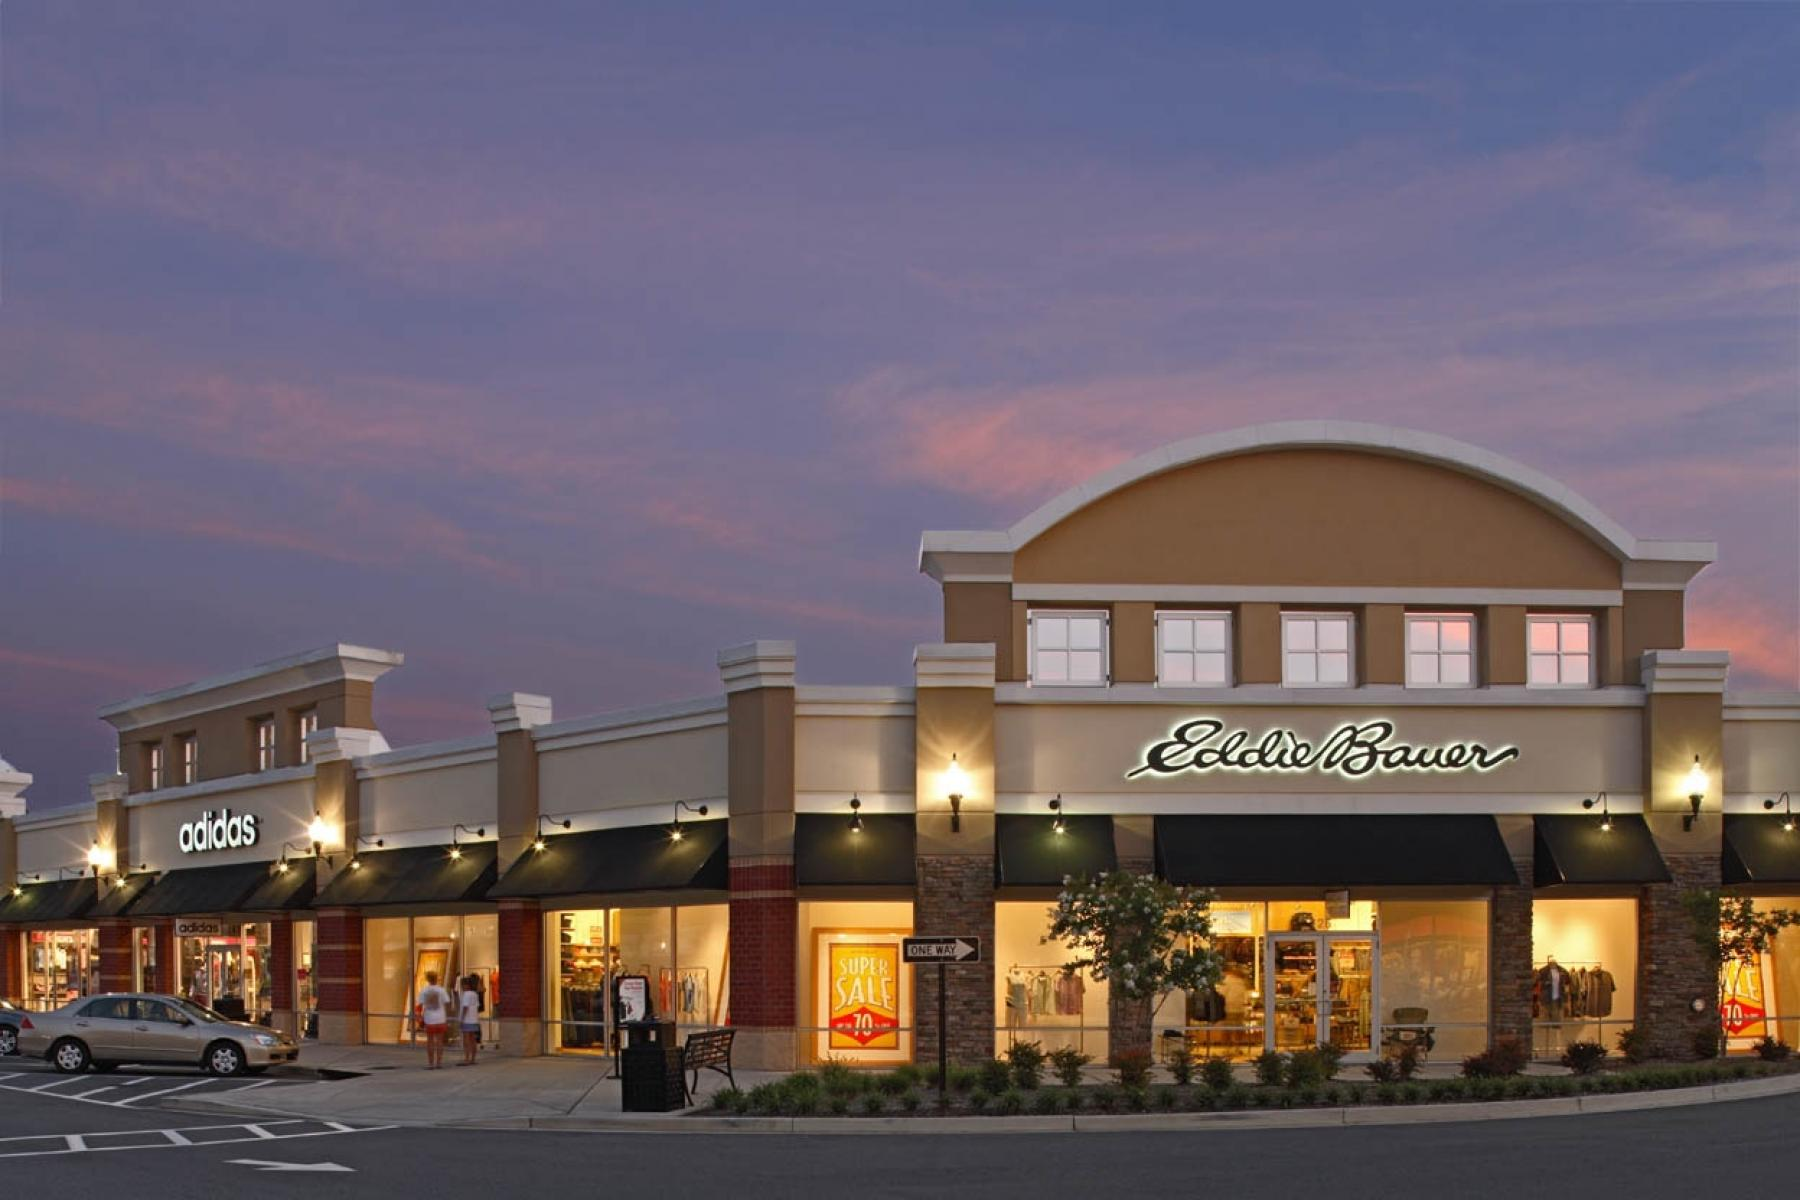 Receipts and Rewards gift card promotion at Queenstown Premium Outlets